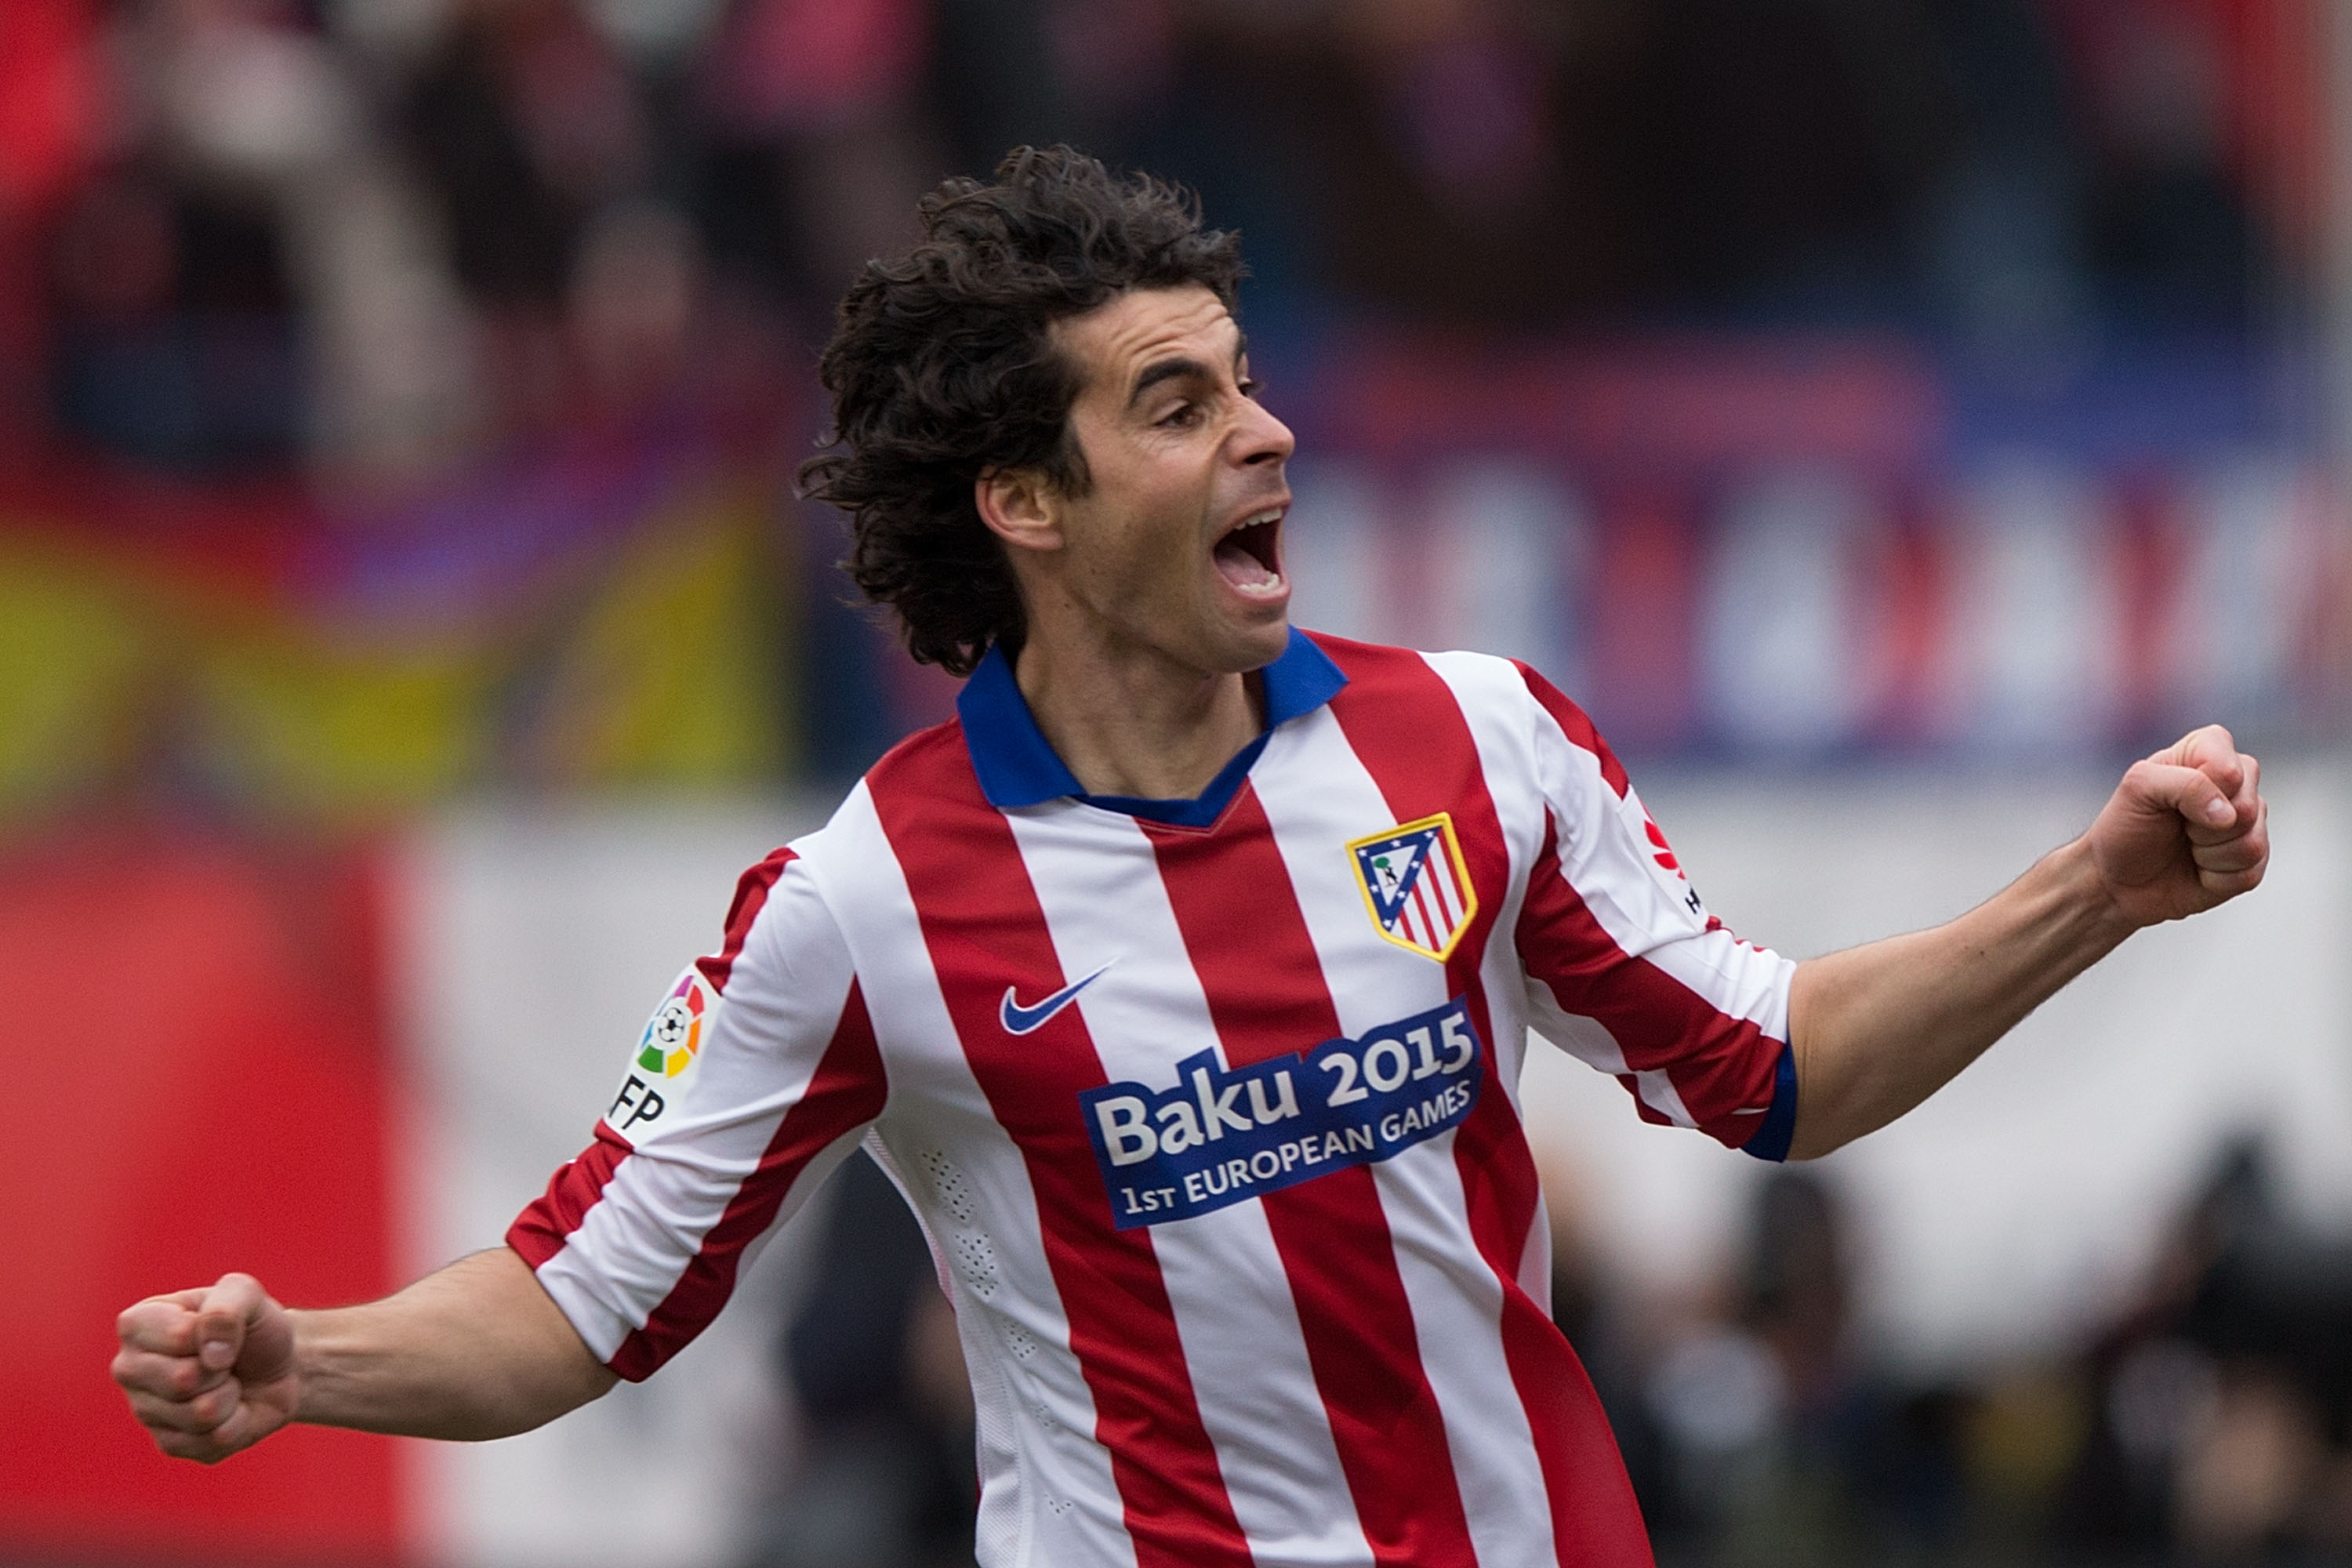 Atlético's win over Real Madrid reignited the title race in La Liga